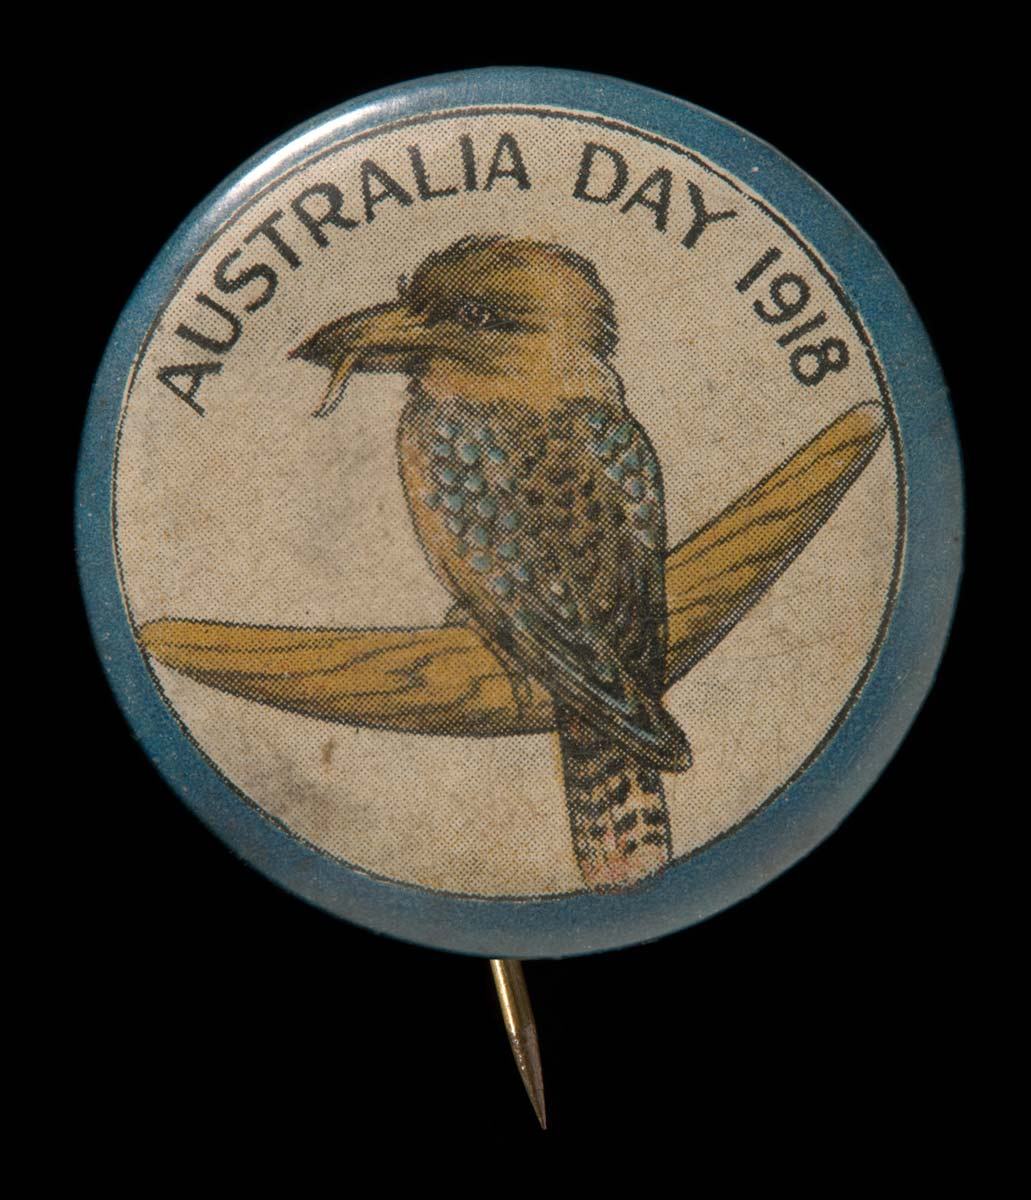 A commemorative circular plastic-coated metal badge. It depicts a brown and blue kookaburra with a worm in its beak, sitting on a brown boomerang, set against a cream background with a blue border.